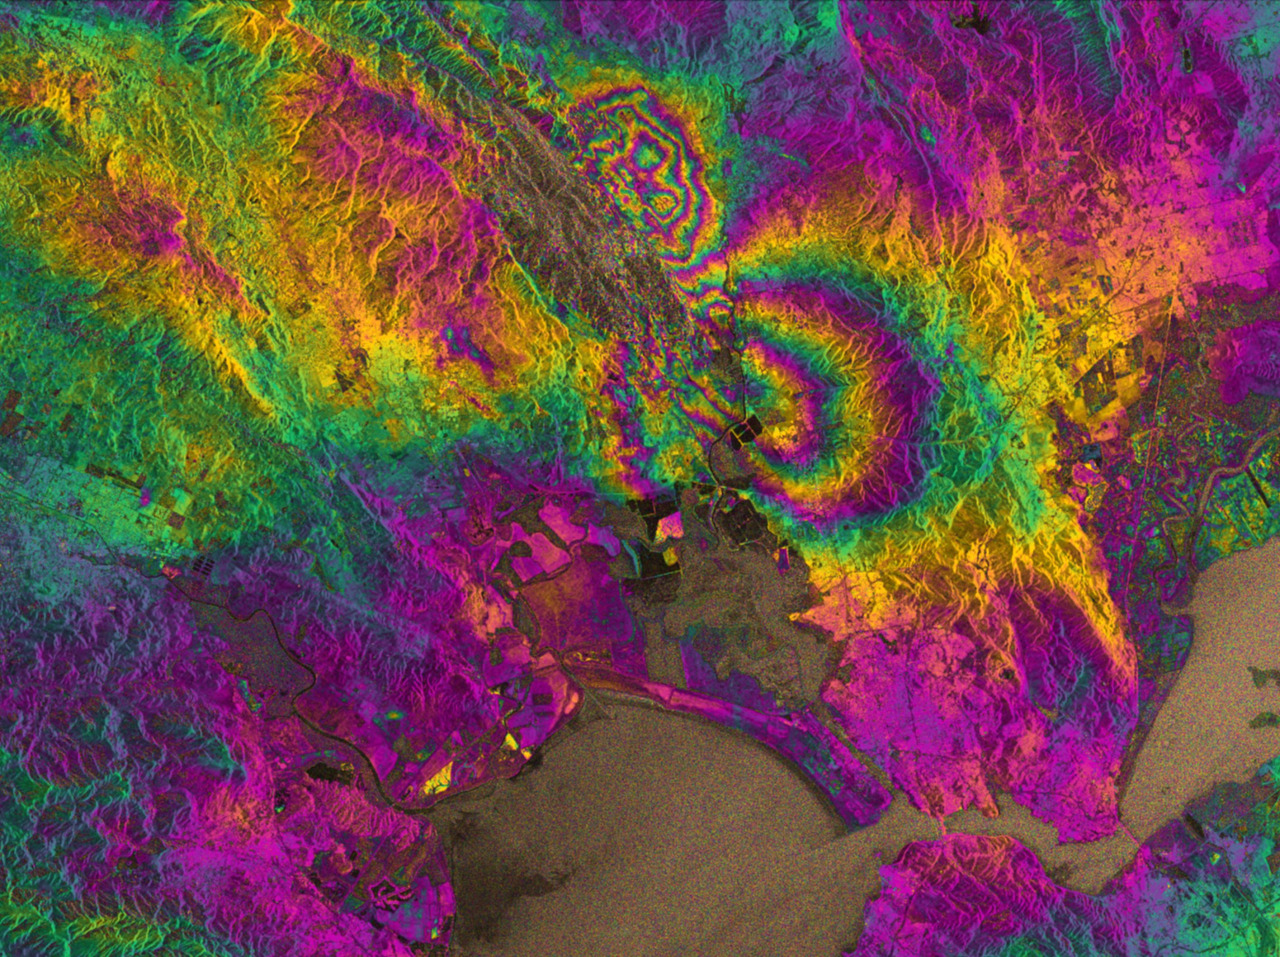 scienceisbeauty: Napa Valley quake. The biggest earthquake in 25 years struck California's Napa Valley in the early hours of 24 August 2014. By processing two Sentinel-1A images, which were acquired on 7 August and 31 August 2014 over this wine-producing region, an interferogram was generated. The two round shapes around Napa valley, which are visible in the central part of the image show how the ground moved during the quake. Deformation on the ground causes phase changes in radar signals that appear as the rainbow-coloured patterns. Each colour cycle corresponds to a deformation of 28 mm deformation. The maximum deformation is more than 10 cm, and an area of about 30x30 km was affected significantly. (Via esa)